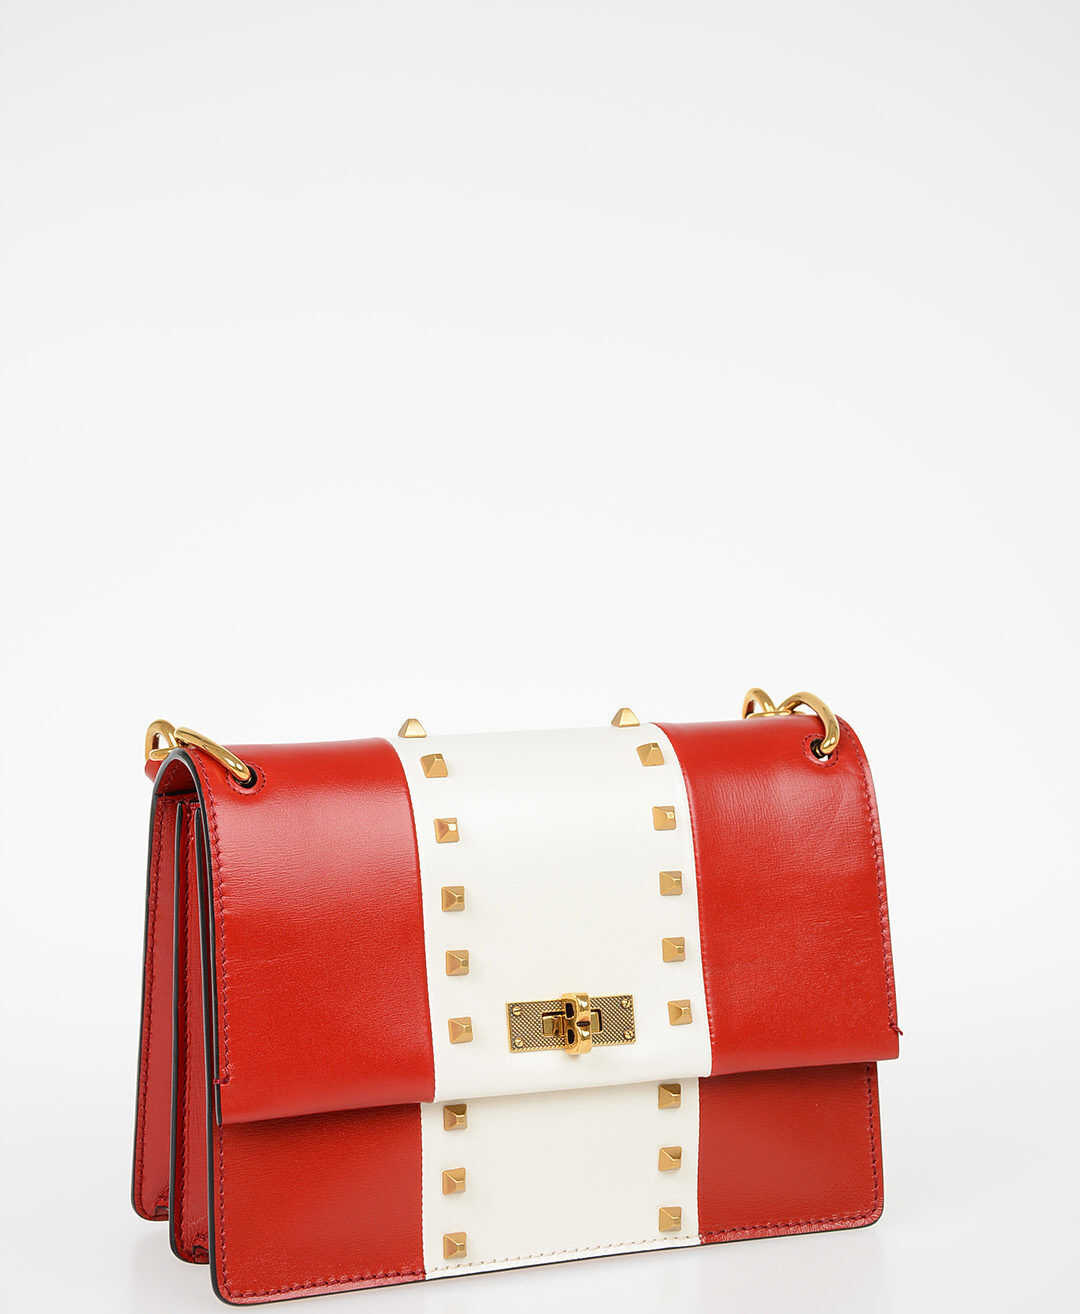 Bally Leather MOXIE Top Handle Bag RED